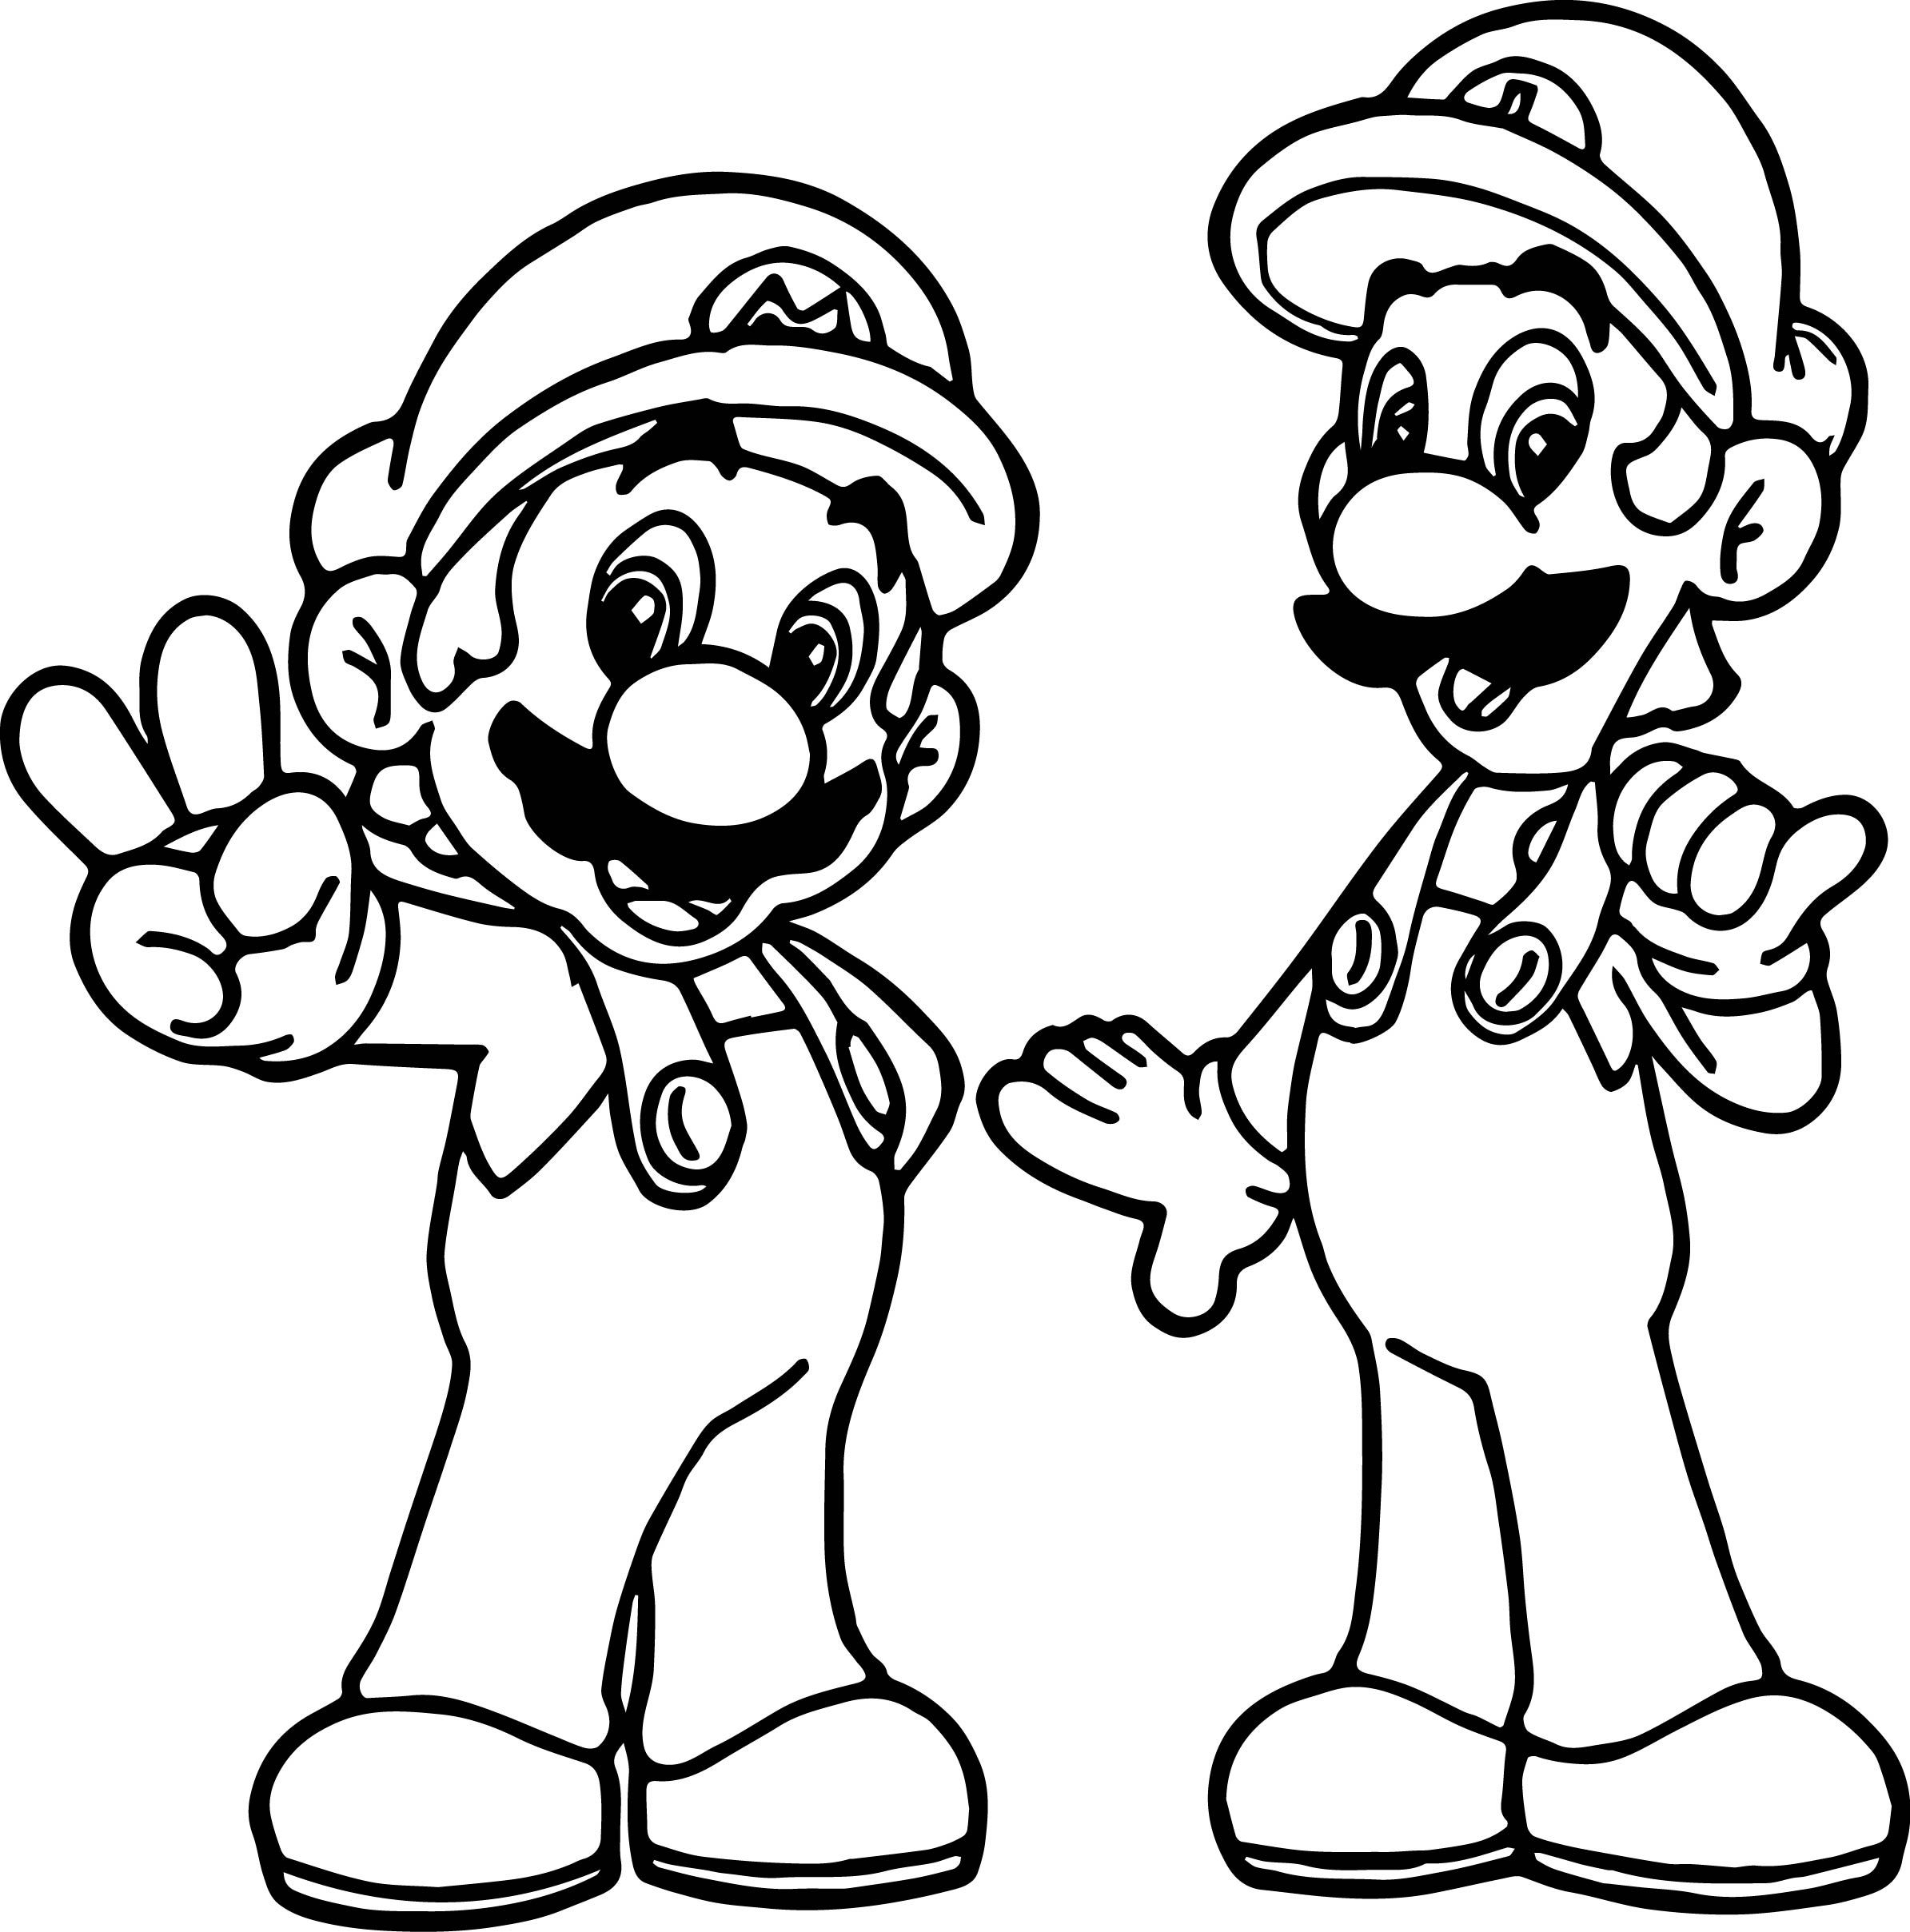 Super Mario And Luigi All Right Coloring Page Super Mario Coloring Pages Mario Coloring Pages Super Mario Bros Party